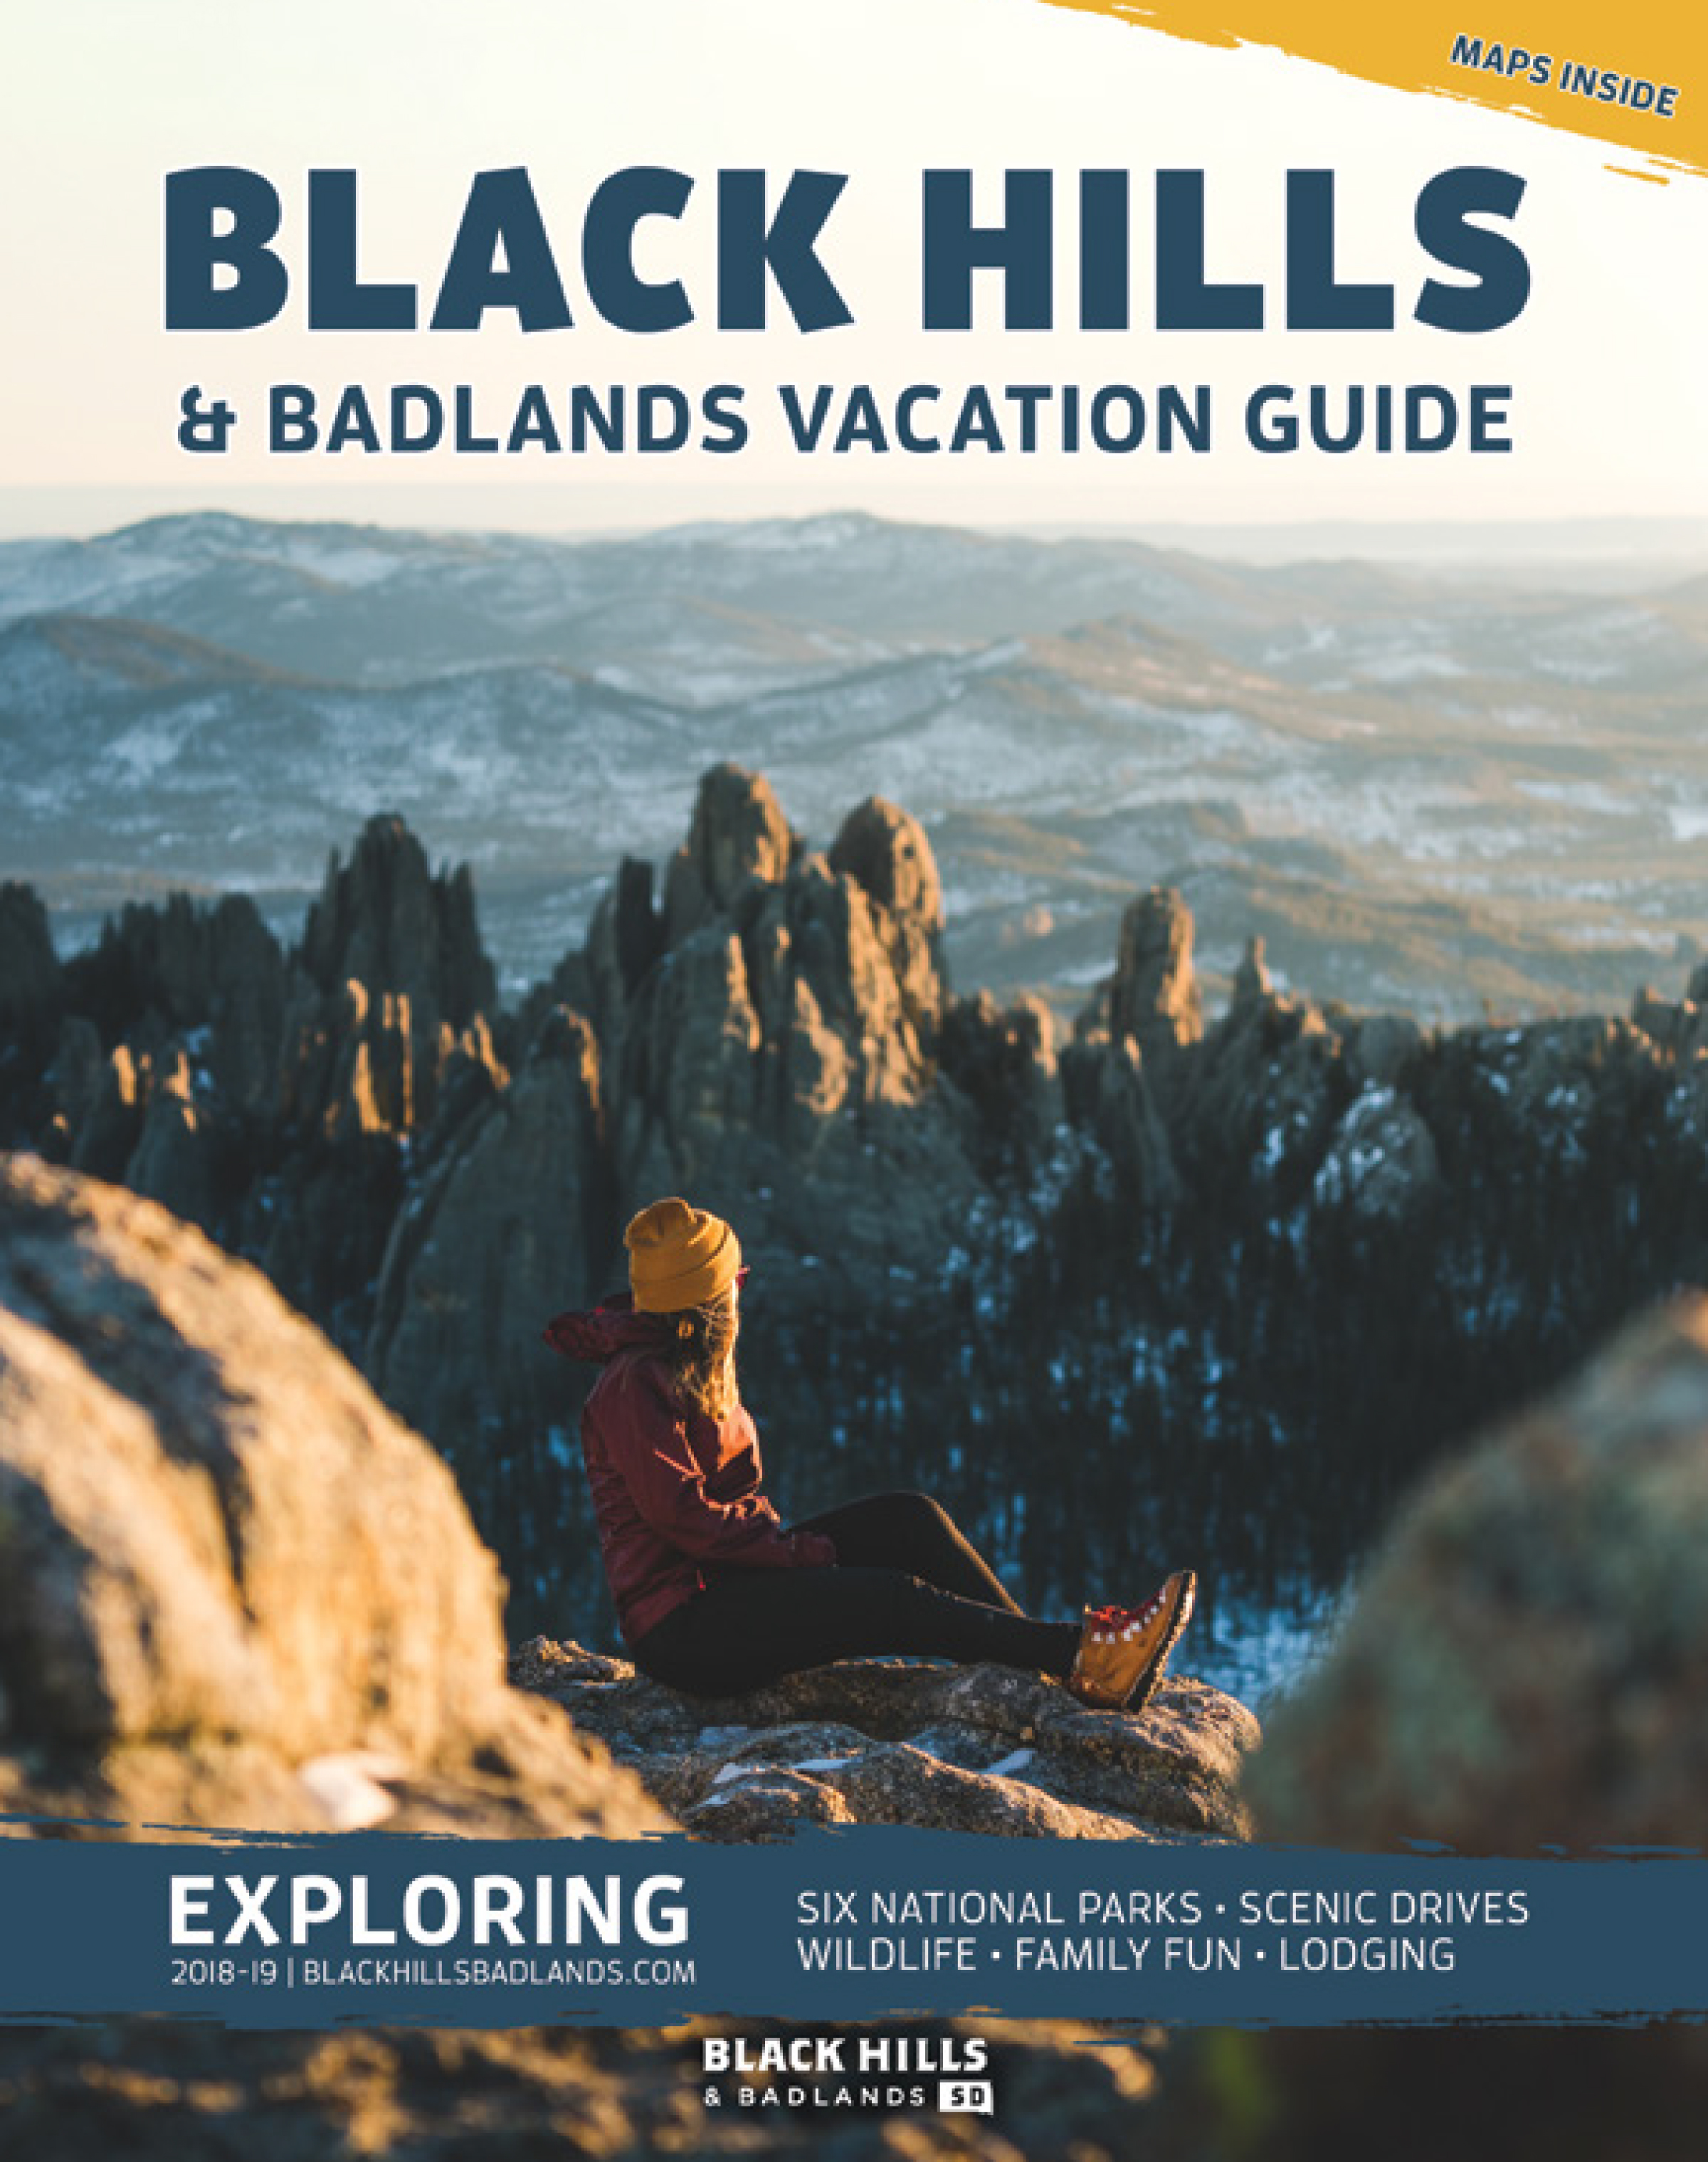 Black Hills & Badlands Winter Vacation Guide